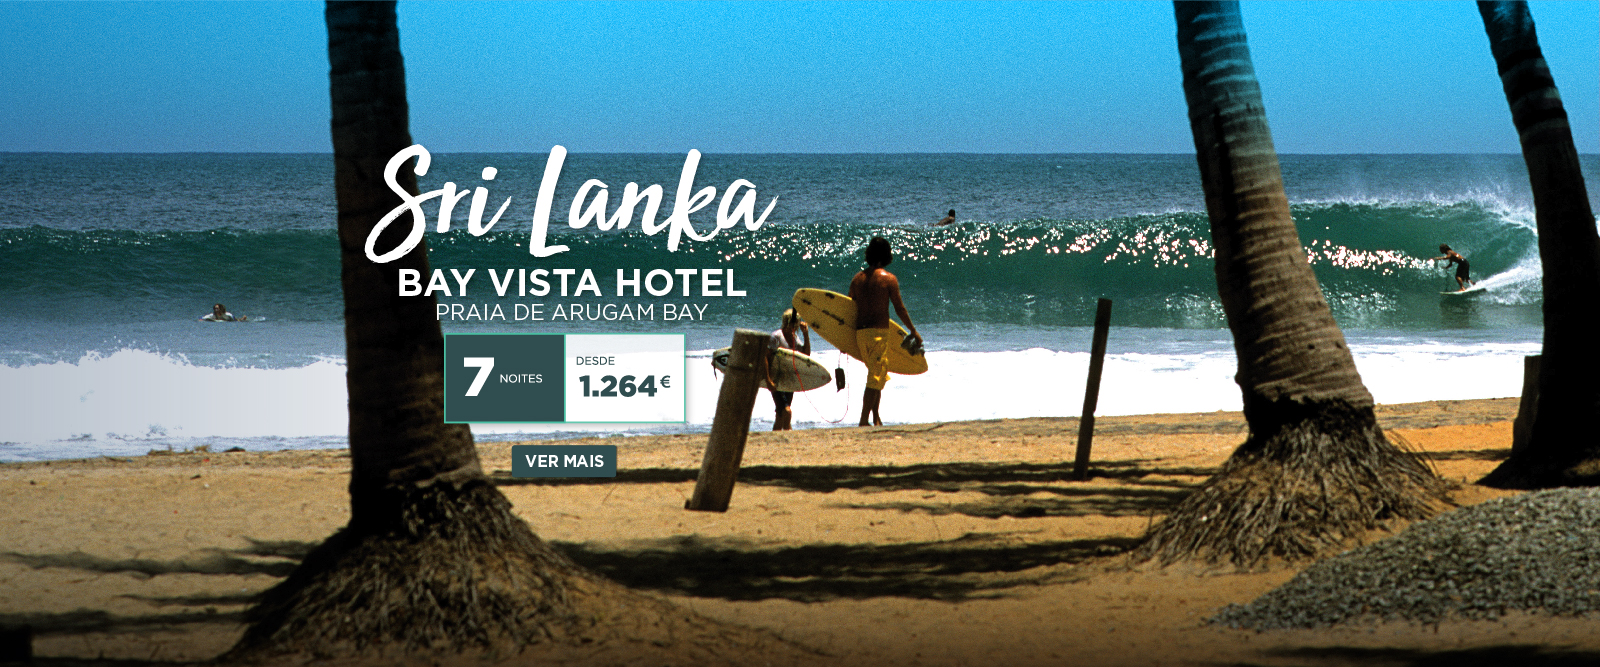 21/5/18 SRI LANKA BAY VISTA HOTEL Arugam Bay